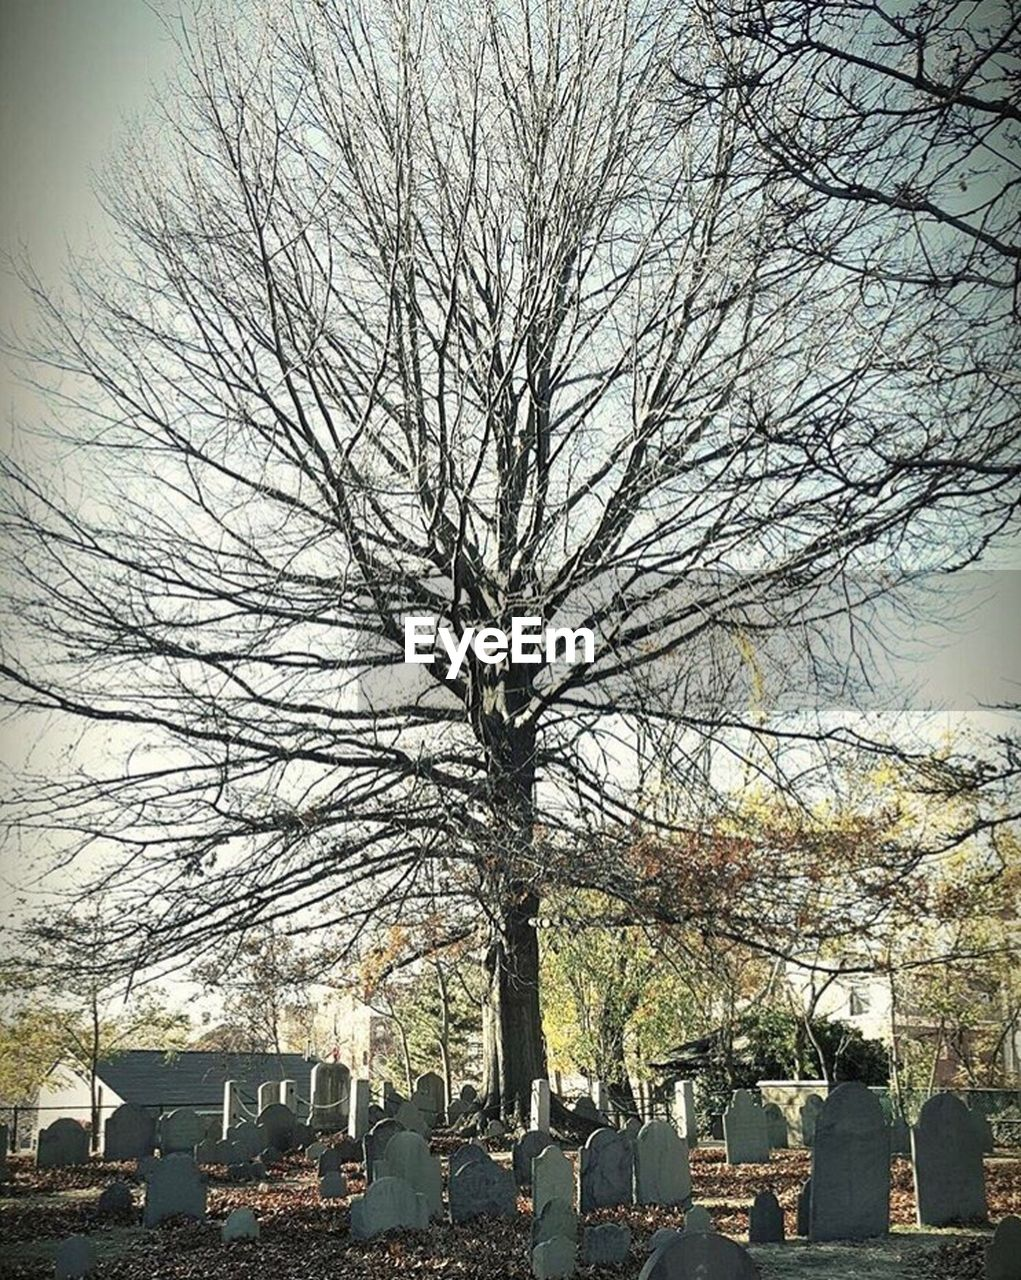 tombstone, cemetery, bare tree, tree, memorial, graveyard, gravestone, grave, sadness, cross, branch, tranquility, outdoors, day, no people, nature, sky